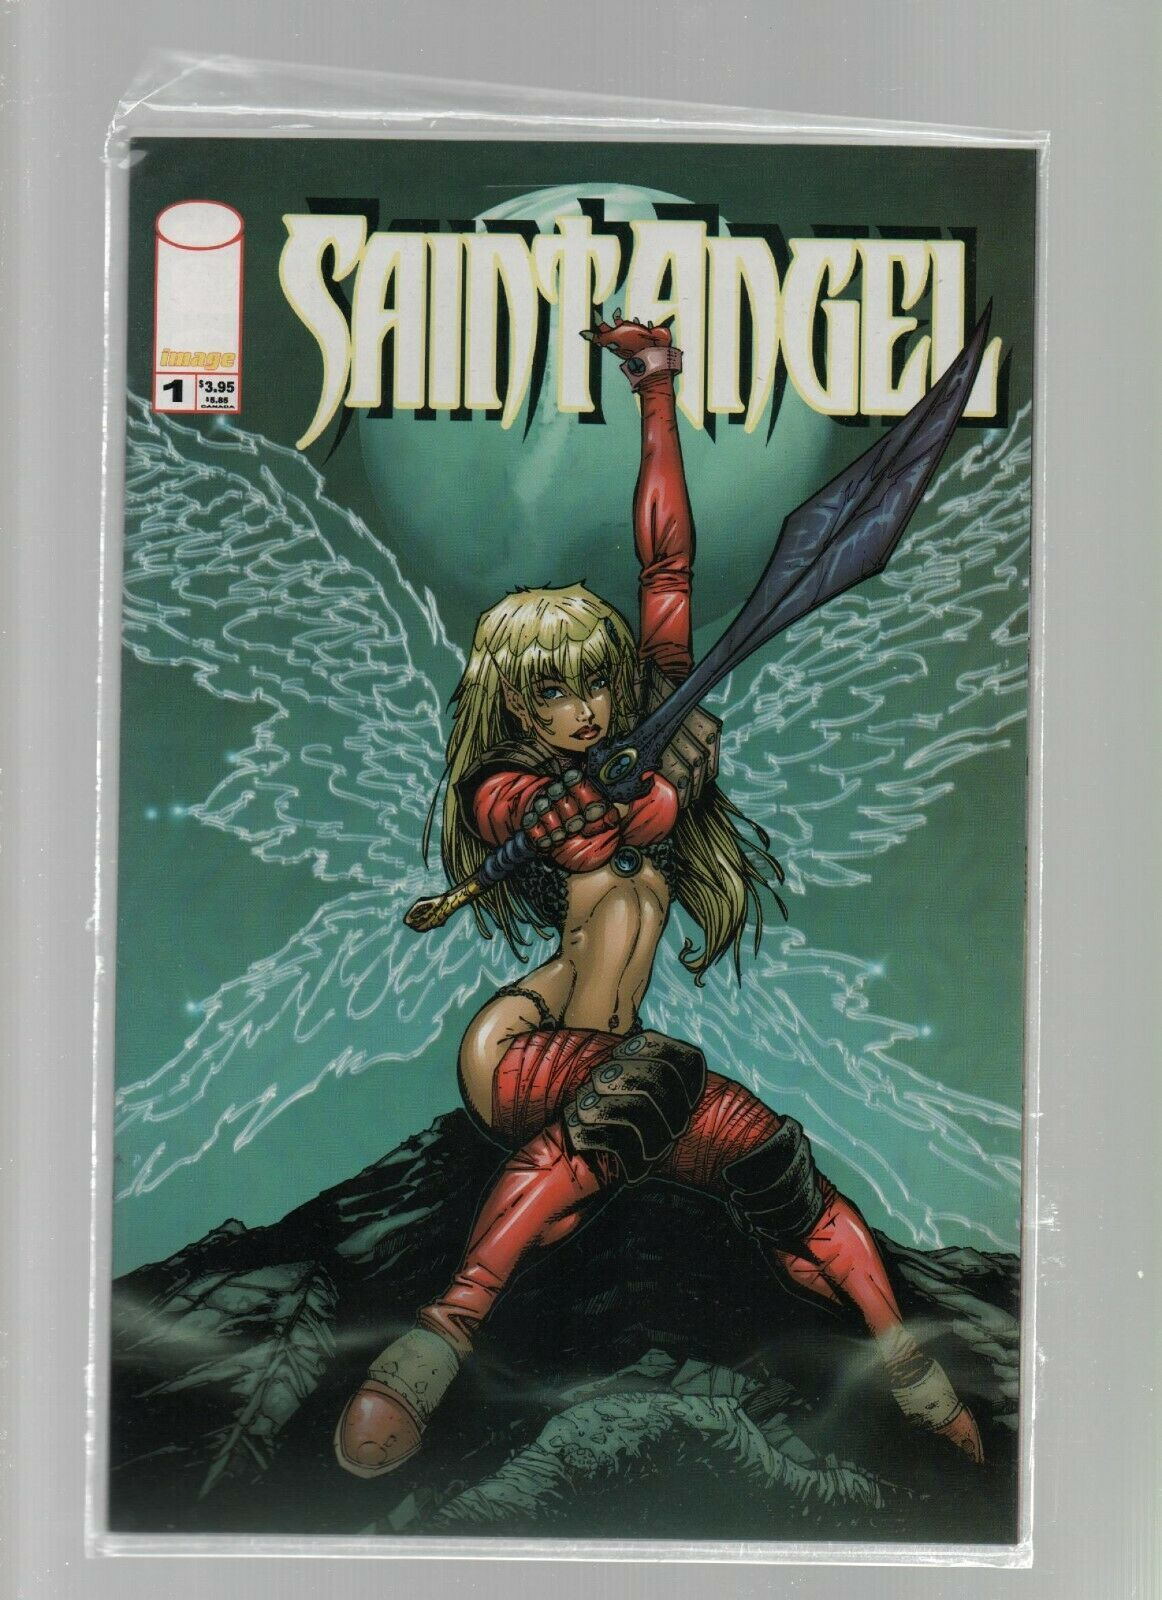 Saint Angel #1A - Image Comics - June 2000 - Karl Altstaetter.